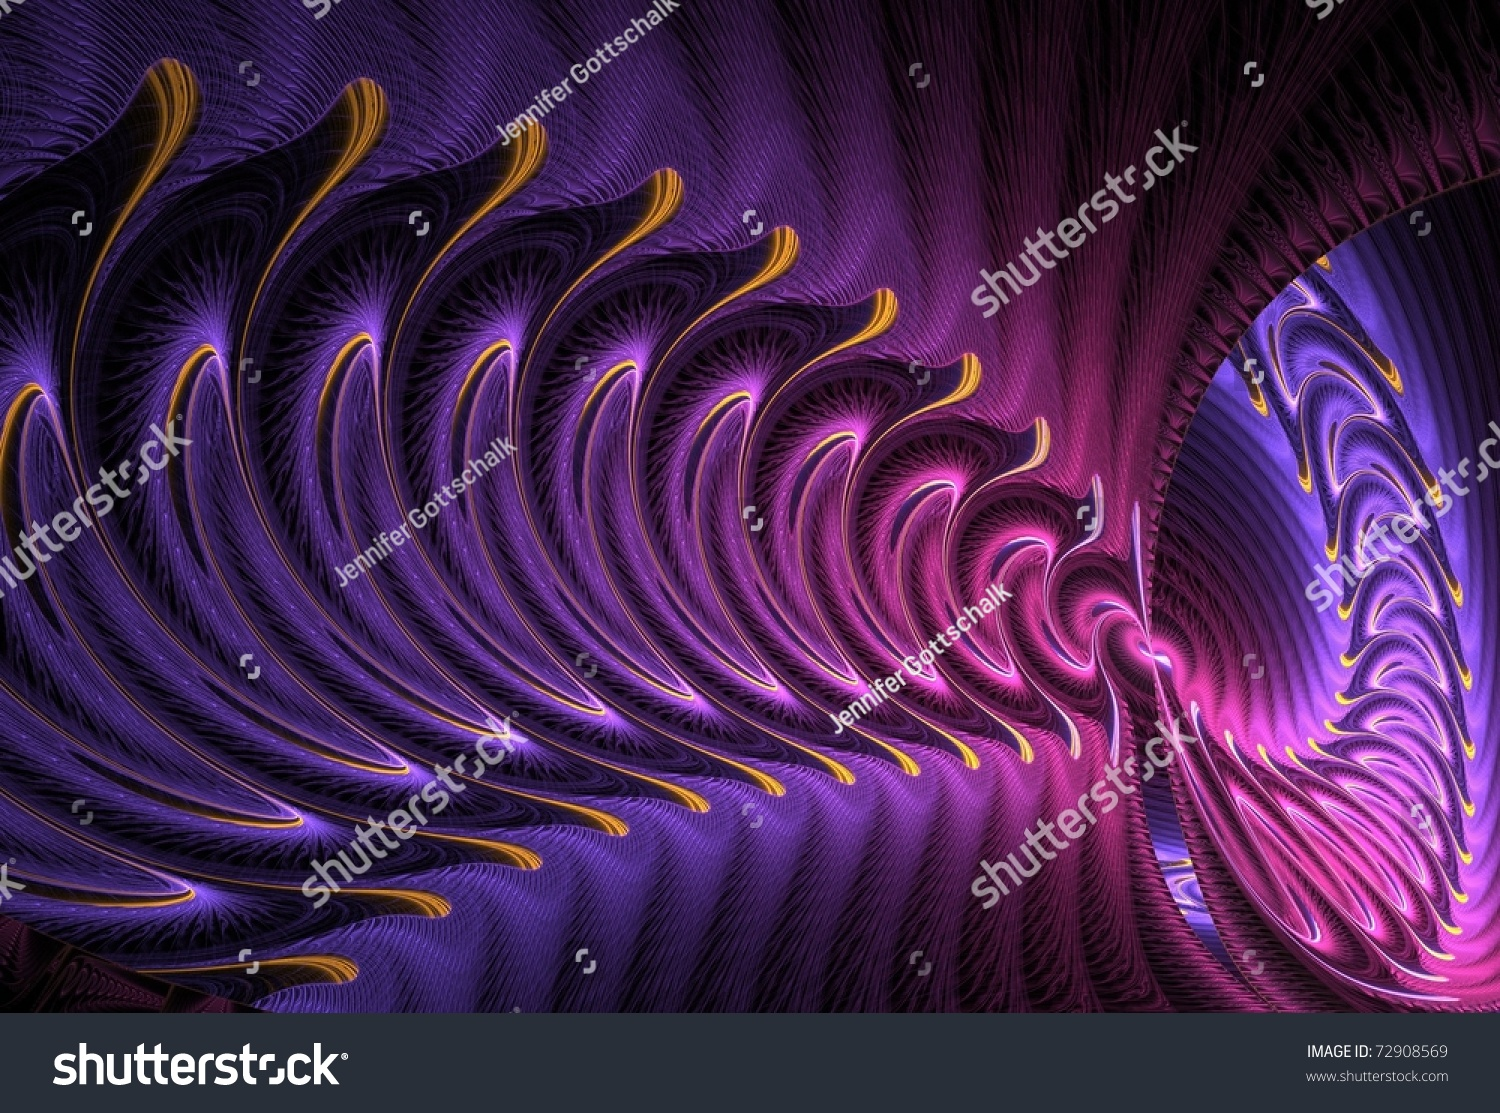 Vibrant Pink Purple Gold Abstract Fractal Stock ...